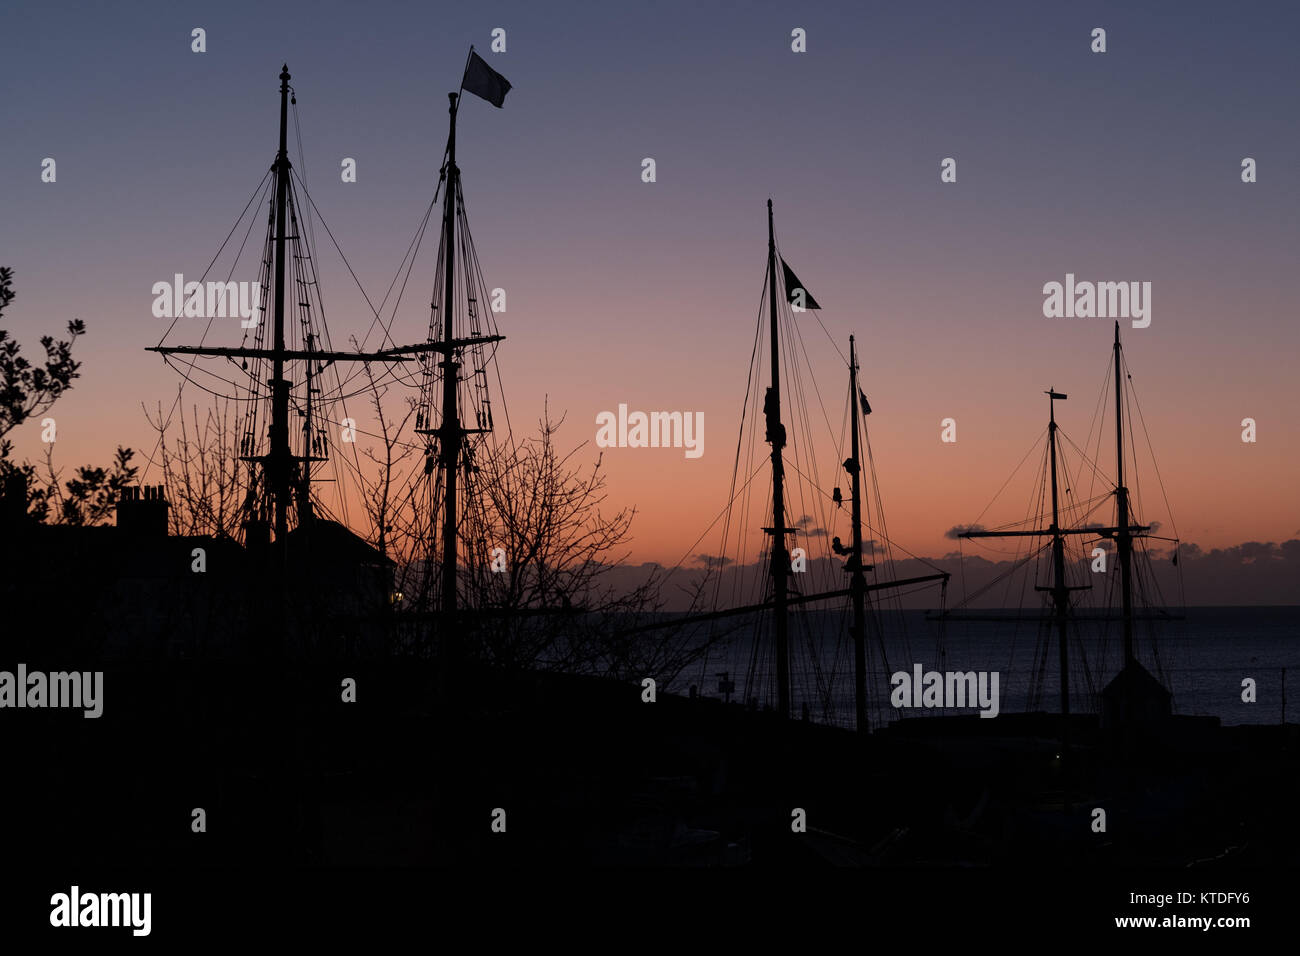 Square rigged tall ships picked in Charlestown, Cornwall, at sunrise - Stock Image